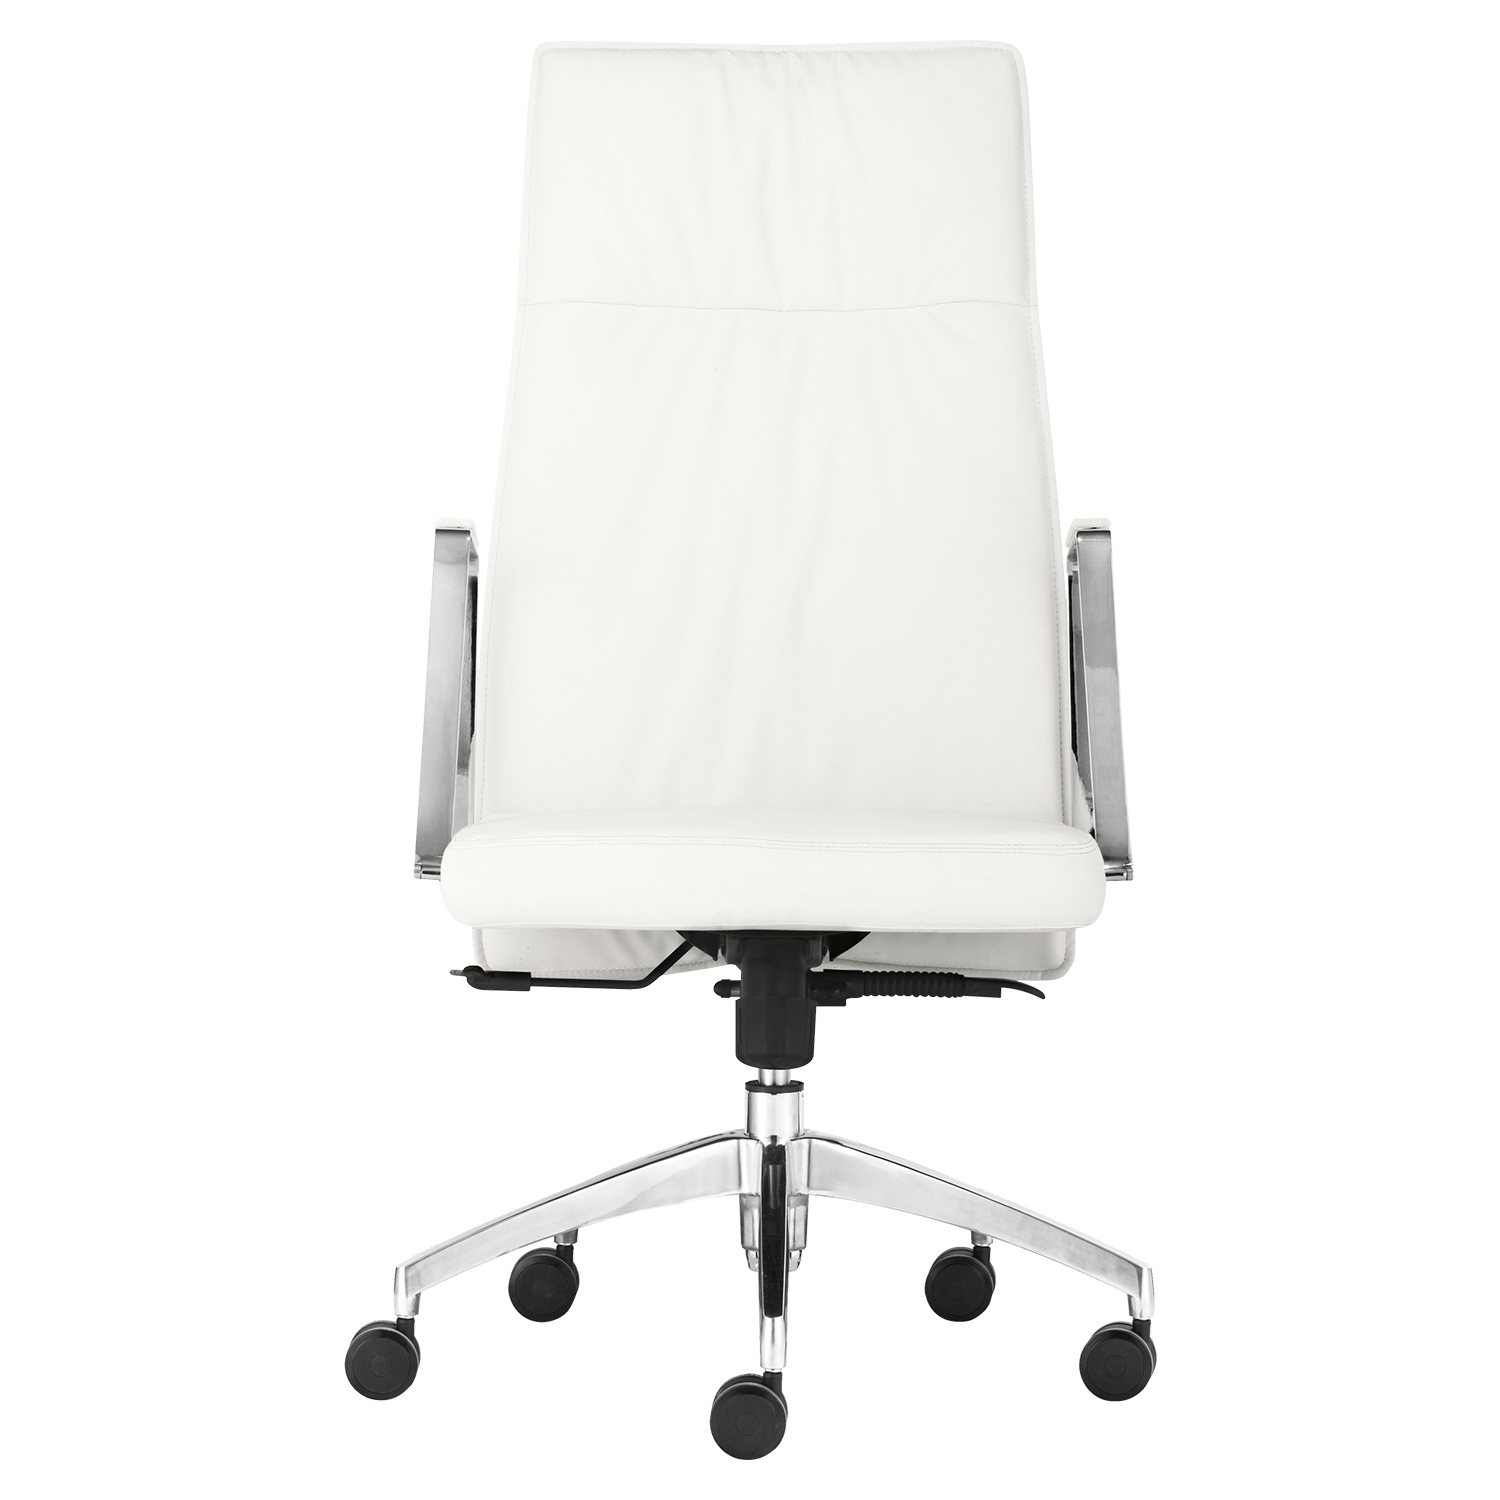 Dean High Back Office Chair - Casters, White